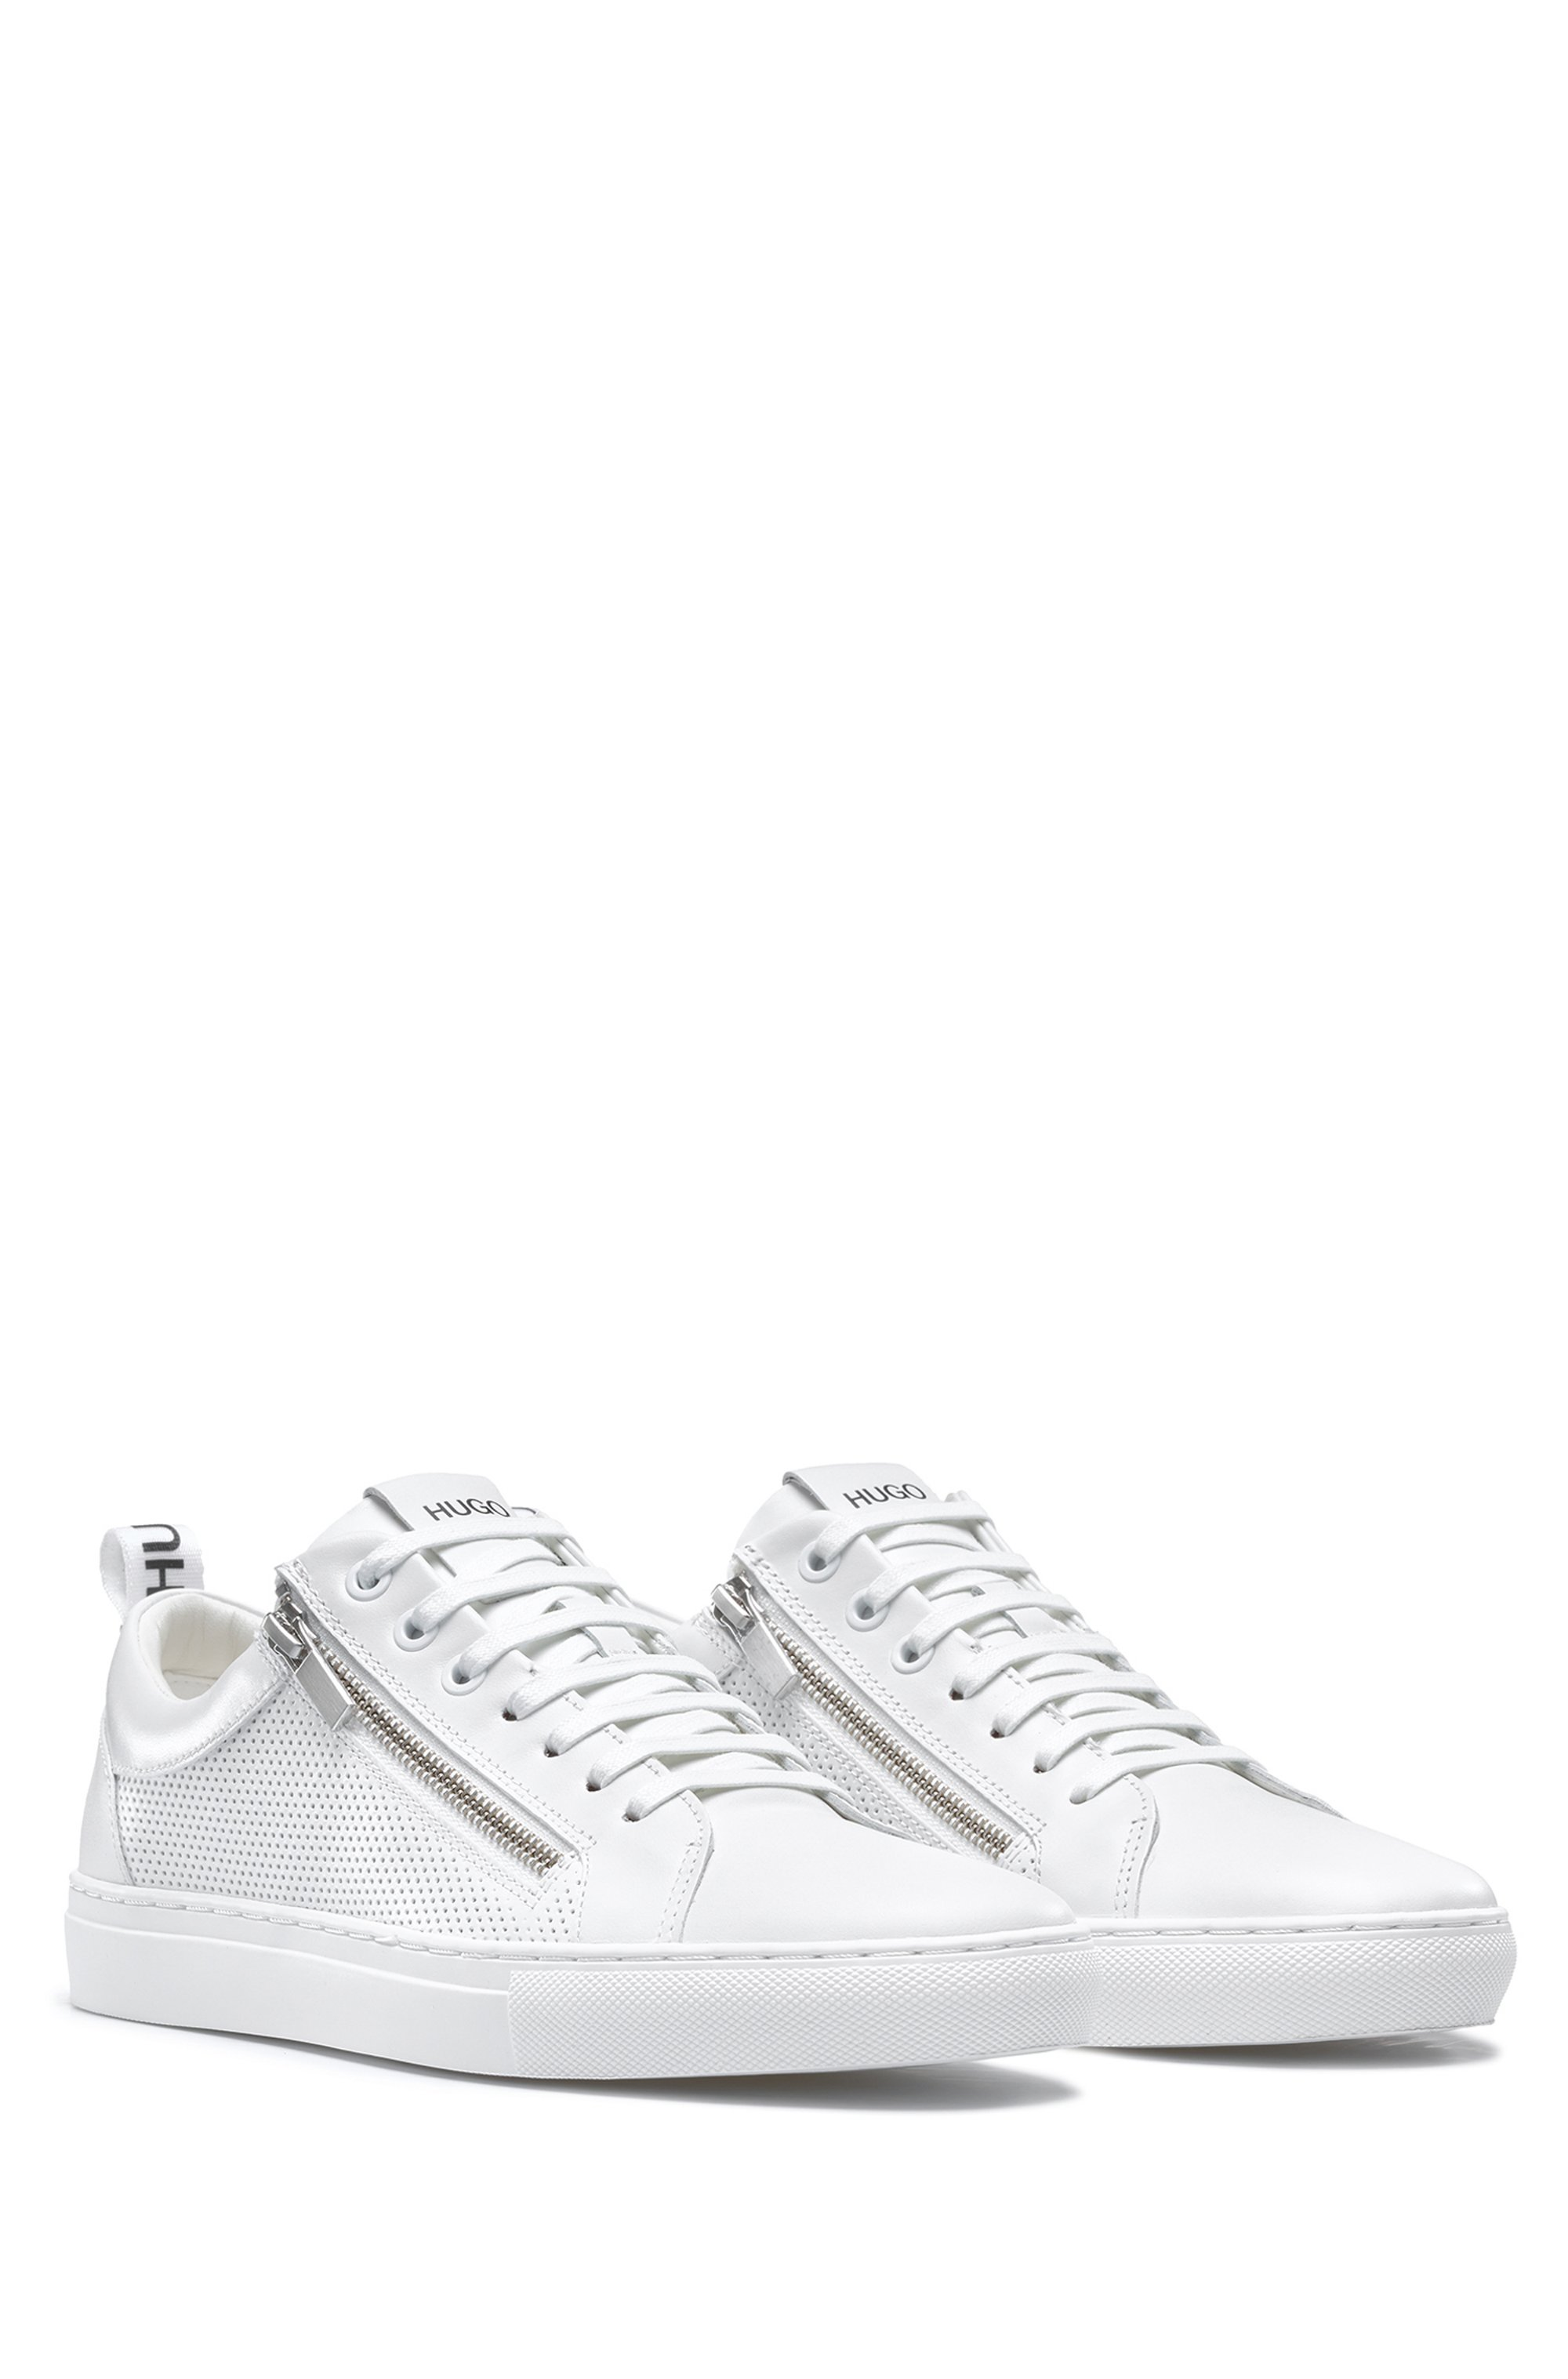 Low-top trainers in nappa leather with zipped uppers